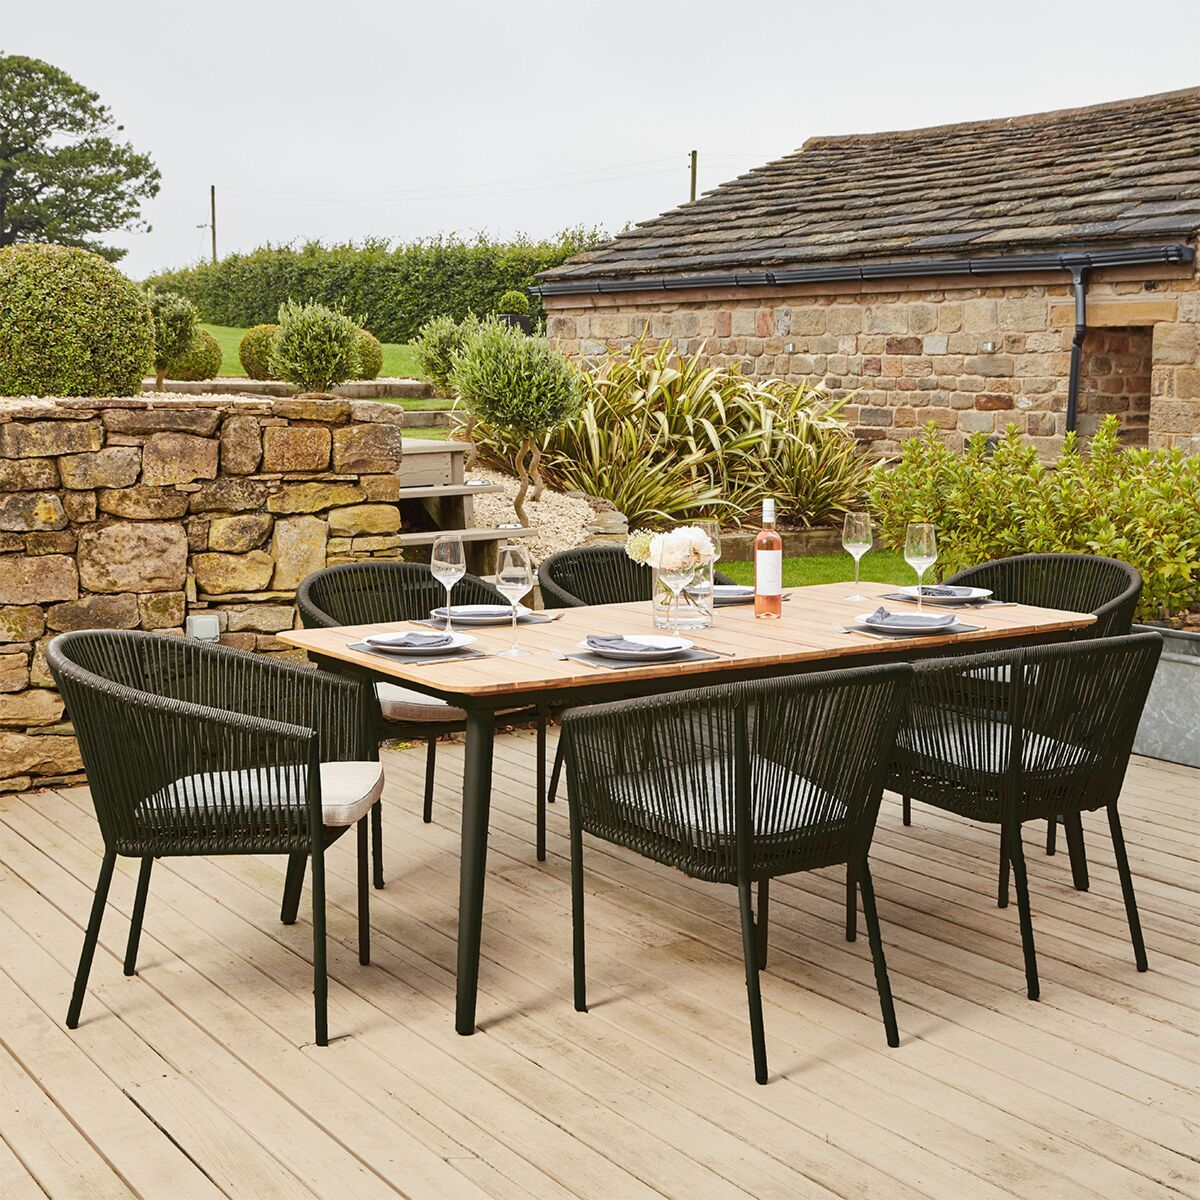 Https Www Robertdyas Co Uk Media Catalog Product Cache C6273ae4c3df0939b2b6eed74e8f56b3 2 3 In 2020 Modern Outdoor Dining Area Garden Dining Set Outdoor Dining Area